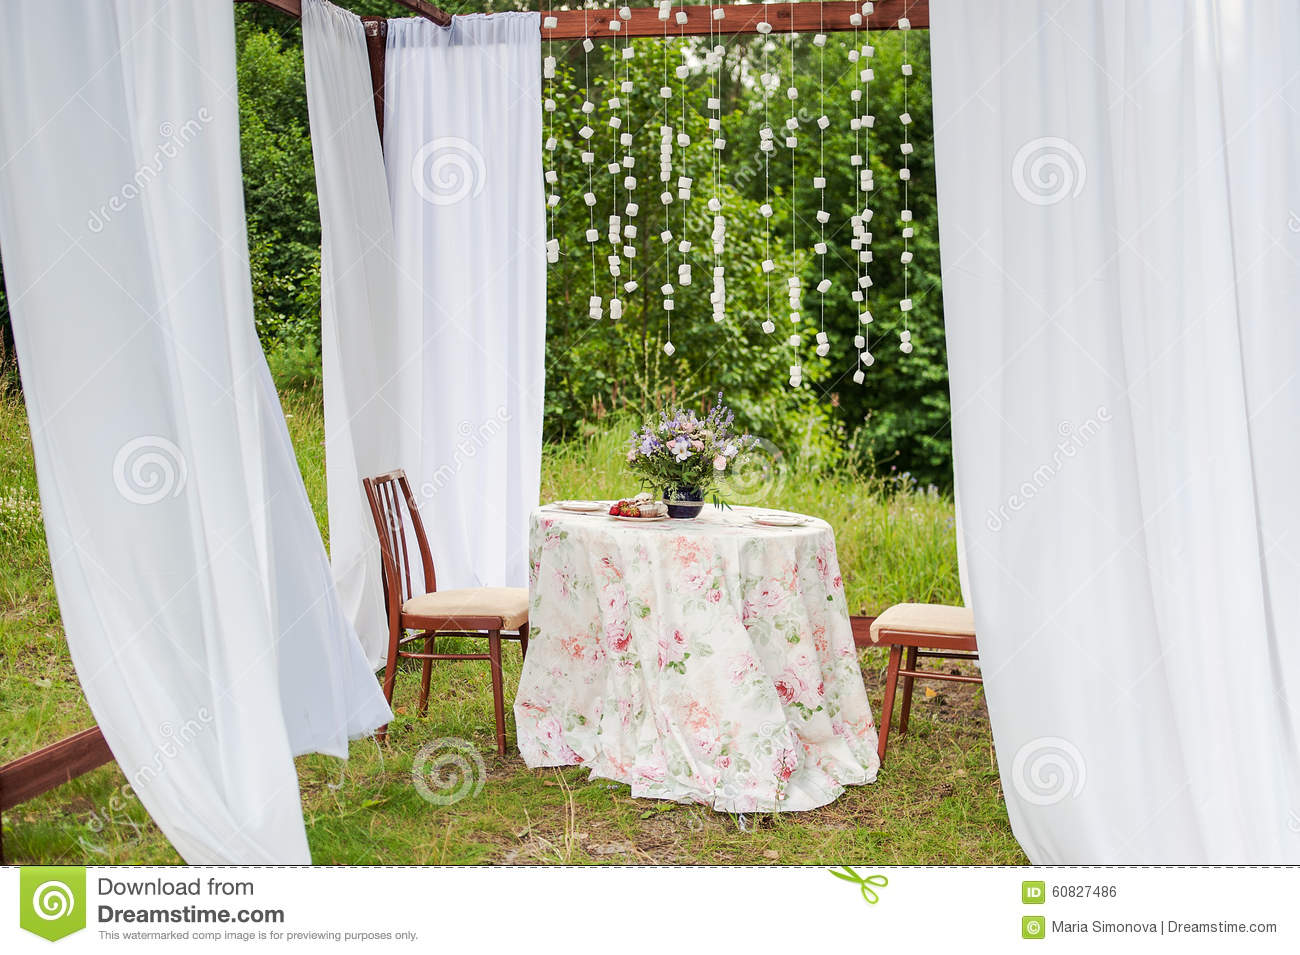 Outdoor Gazebo With White Curtains Wedding Decorations Stock Photo Image 60827486